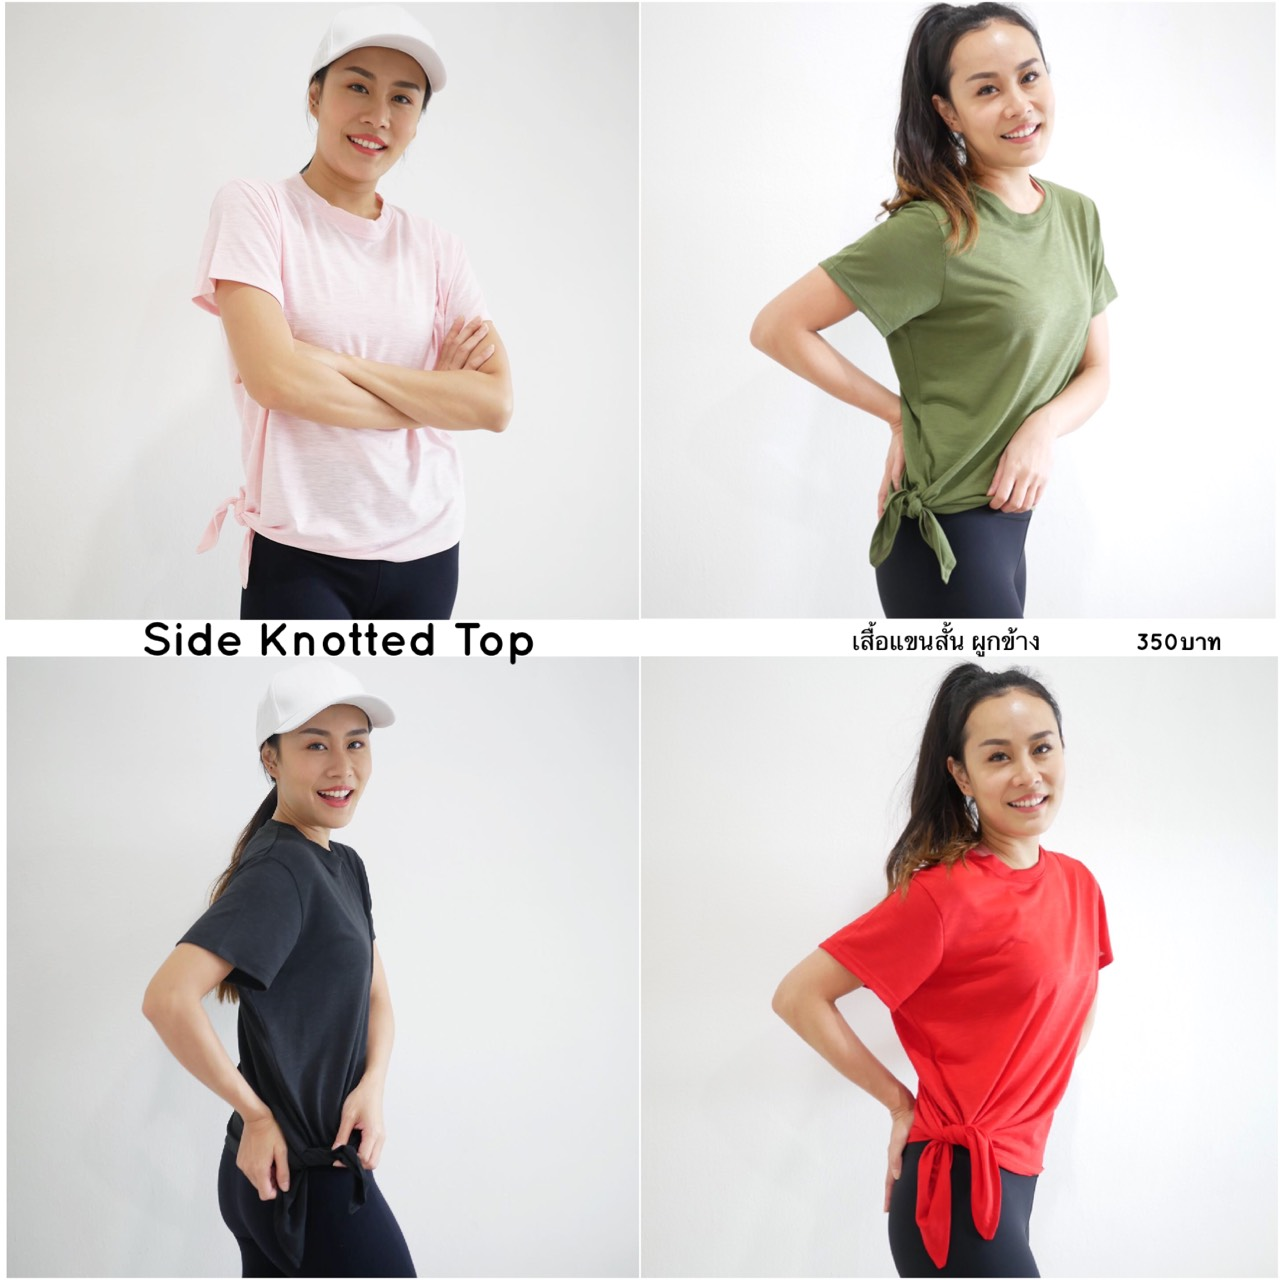 SIDE KNOTTED TOP